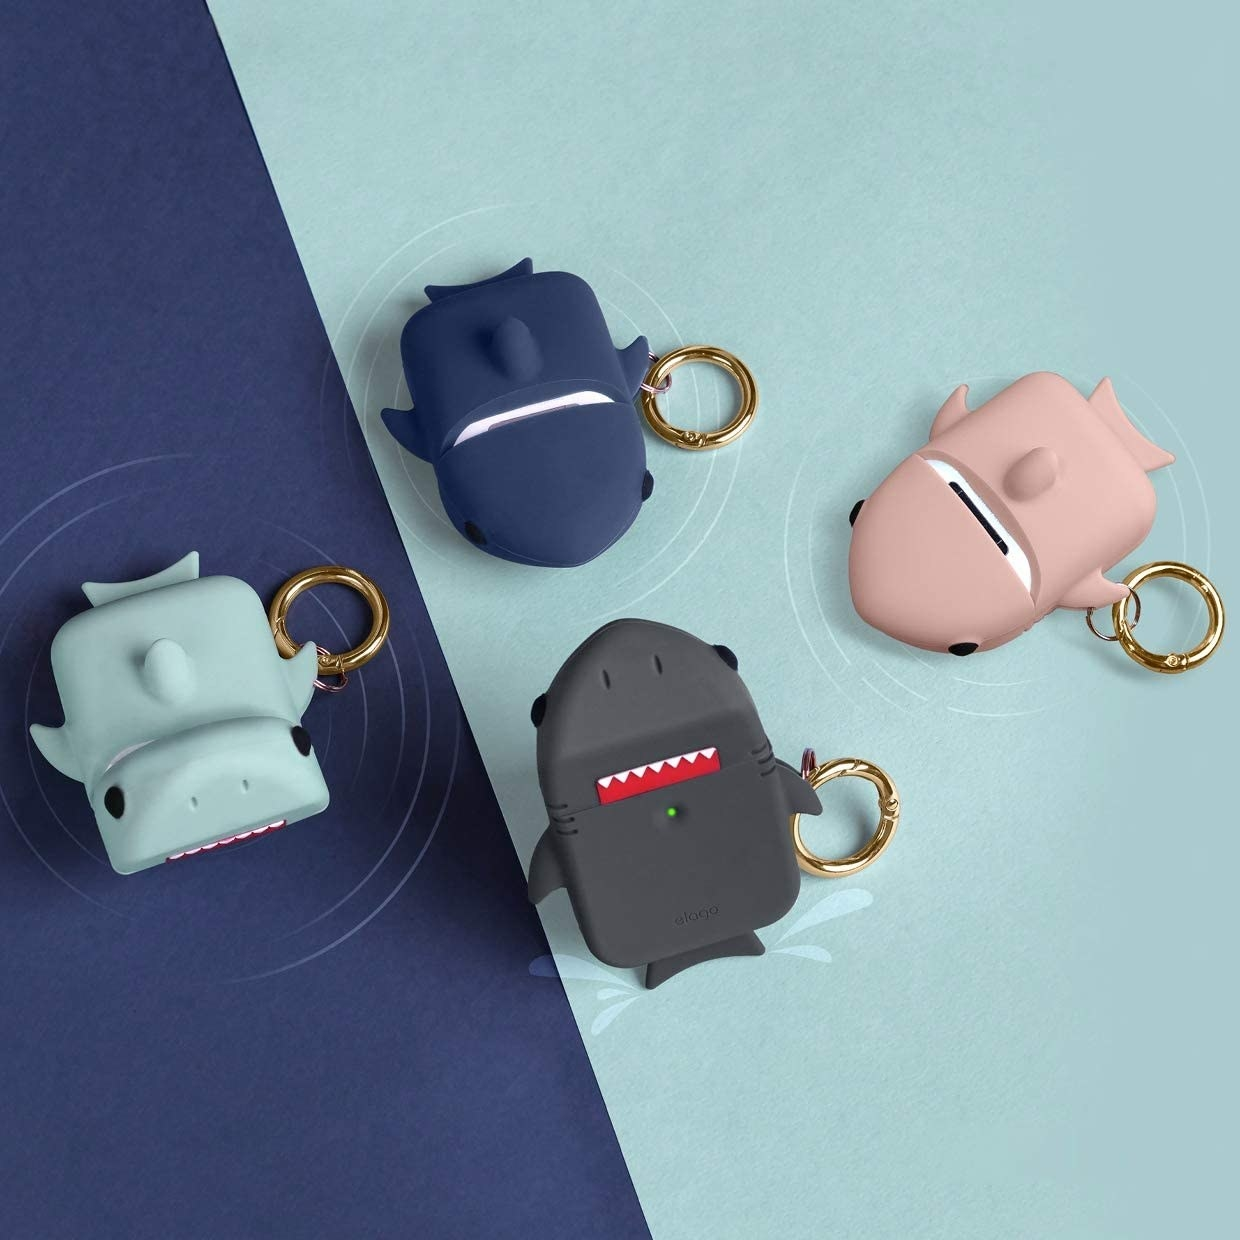 Four shark AirPod cases laid out